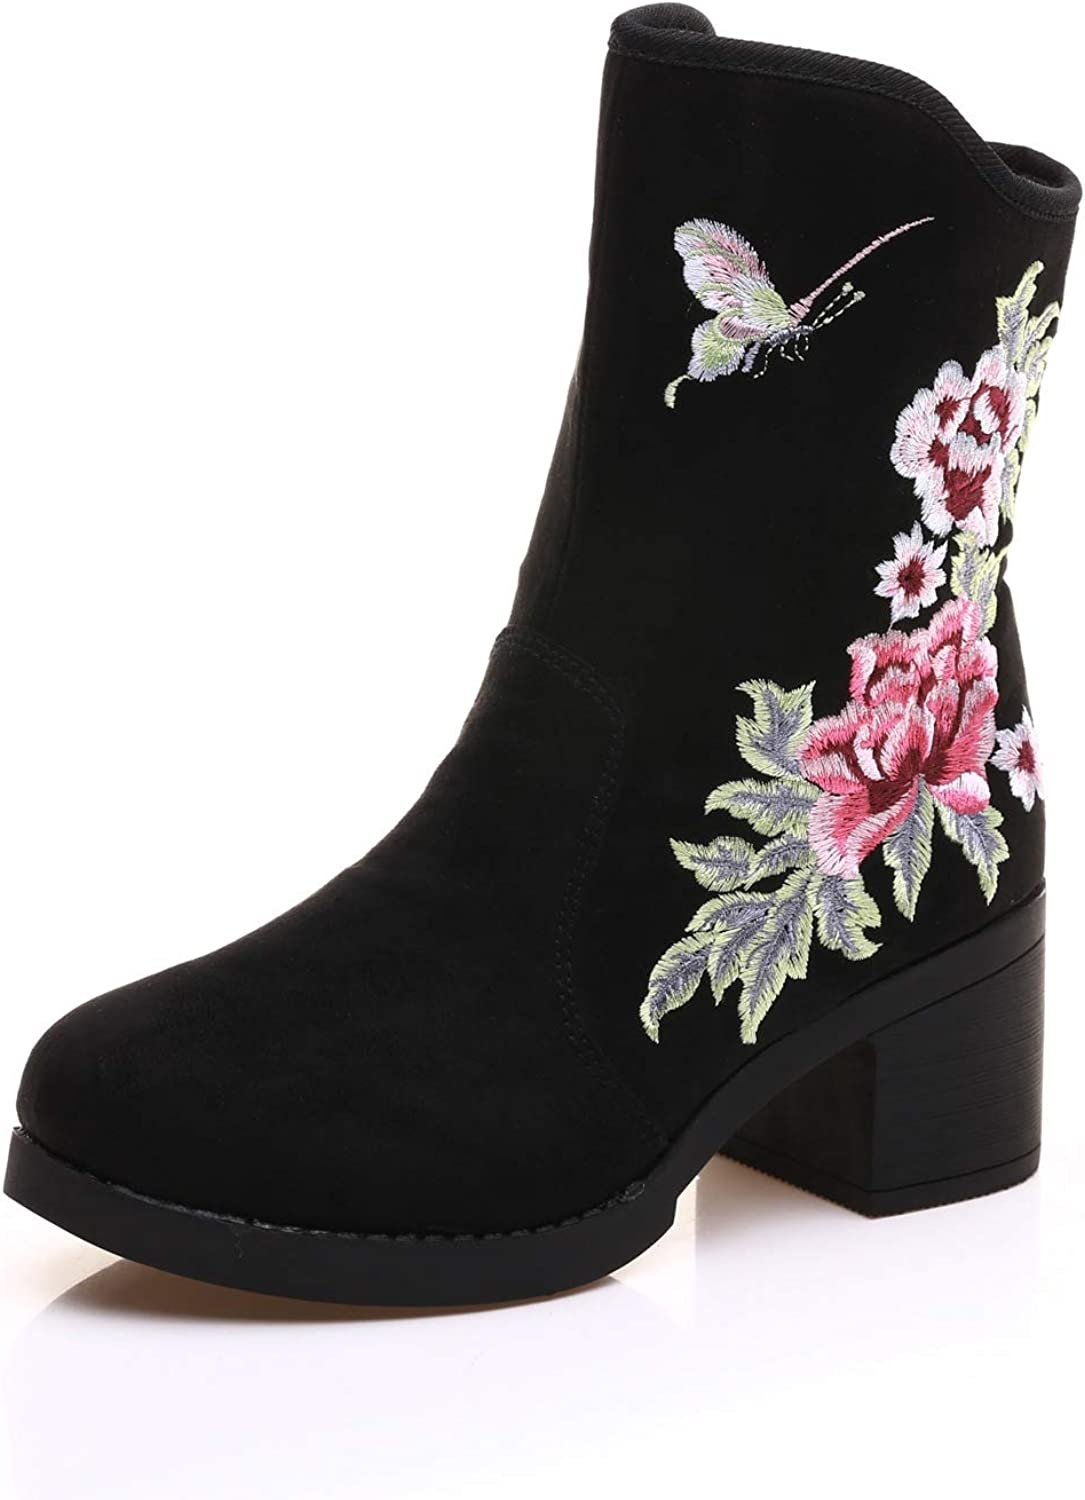 Welcometoo Korean Fashion Boots Women Embroider Floral Black Snow Boots Square Heels shoes Womens Winter Warm Booties